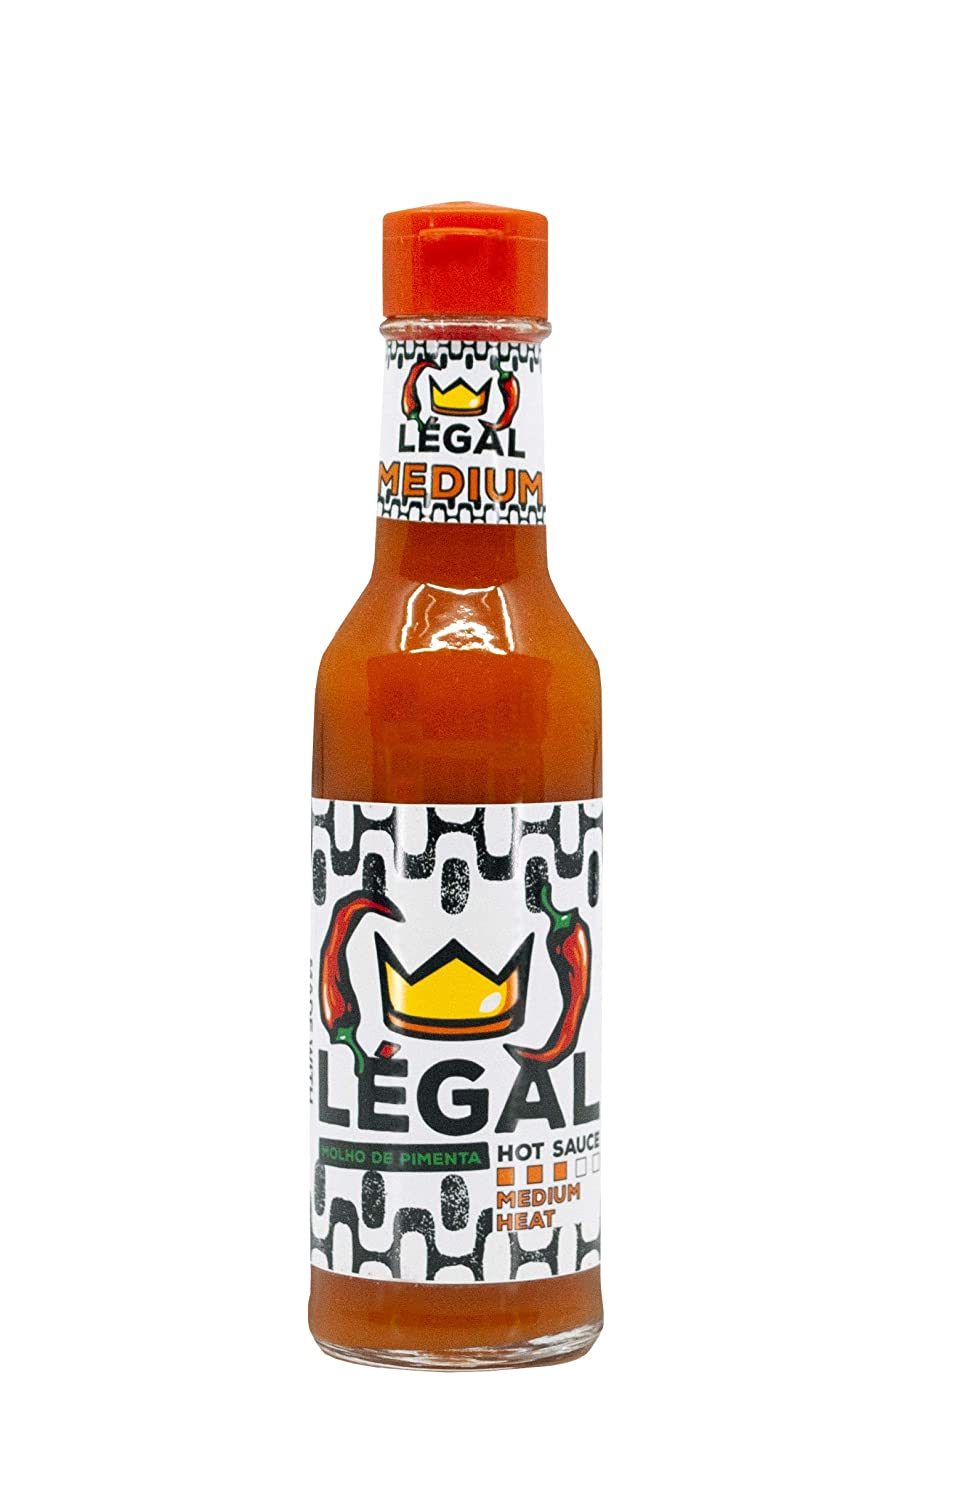 MEDIUM SPICE 1 Pack - Hot Sauce Bottles - Hot Sauces - Natural Hot Sauce - Brazilian Hot Sauce - Keto Hot Sauce - Paleo Hot Sauce - Vegan Hot Sauce - Malagueta Pepper Sauce - LÉGAL HOT SAUCE